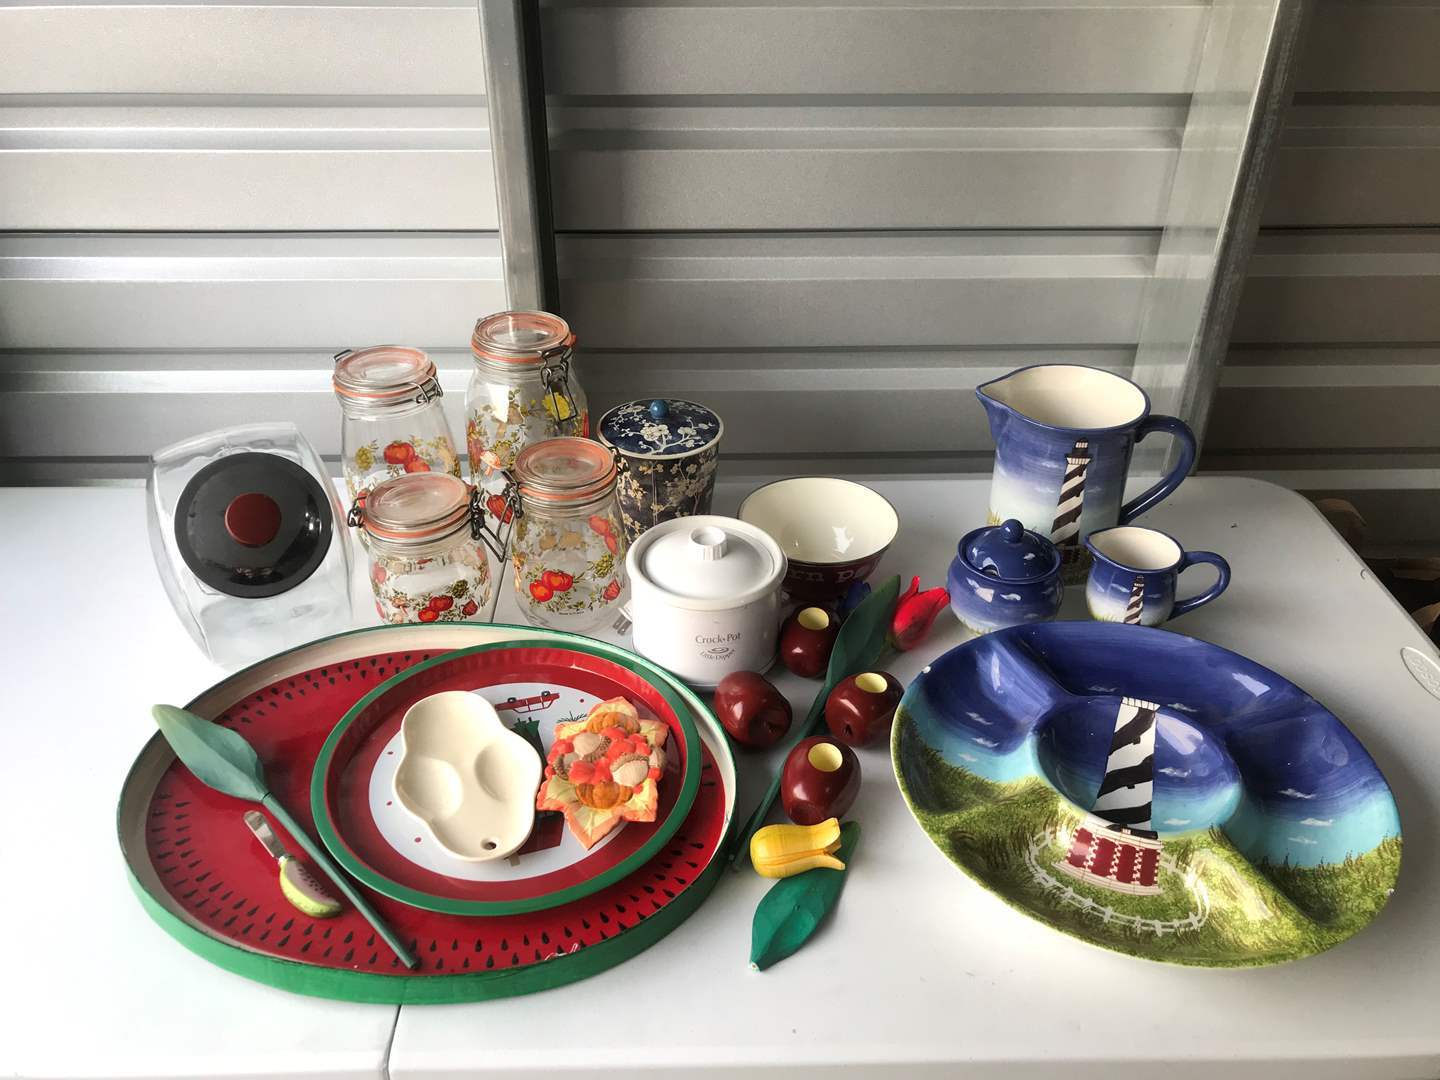 Lot # 46 - Misc. Kitchen Items: Mini Crock Pot w/Little Dipper, Serving Trays, Canisters & More.. (main image)